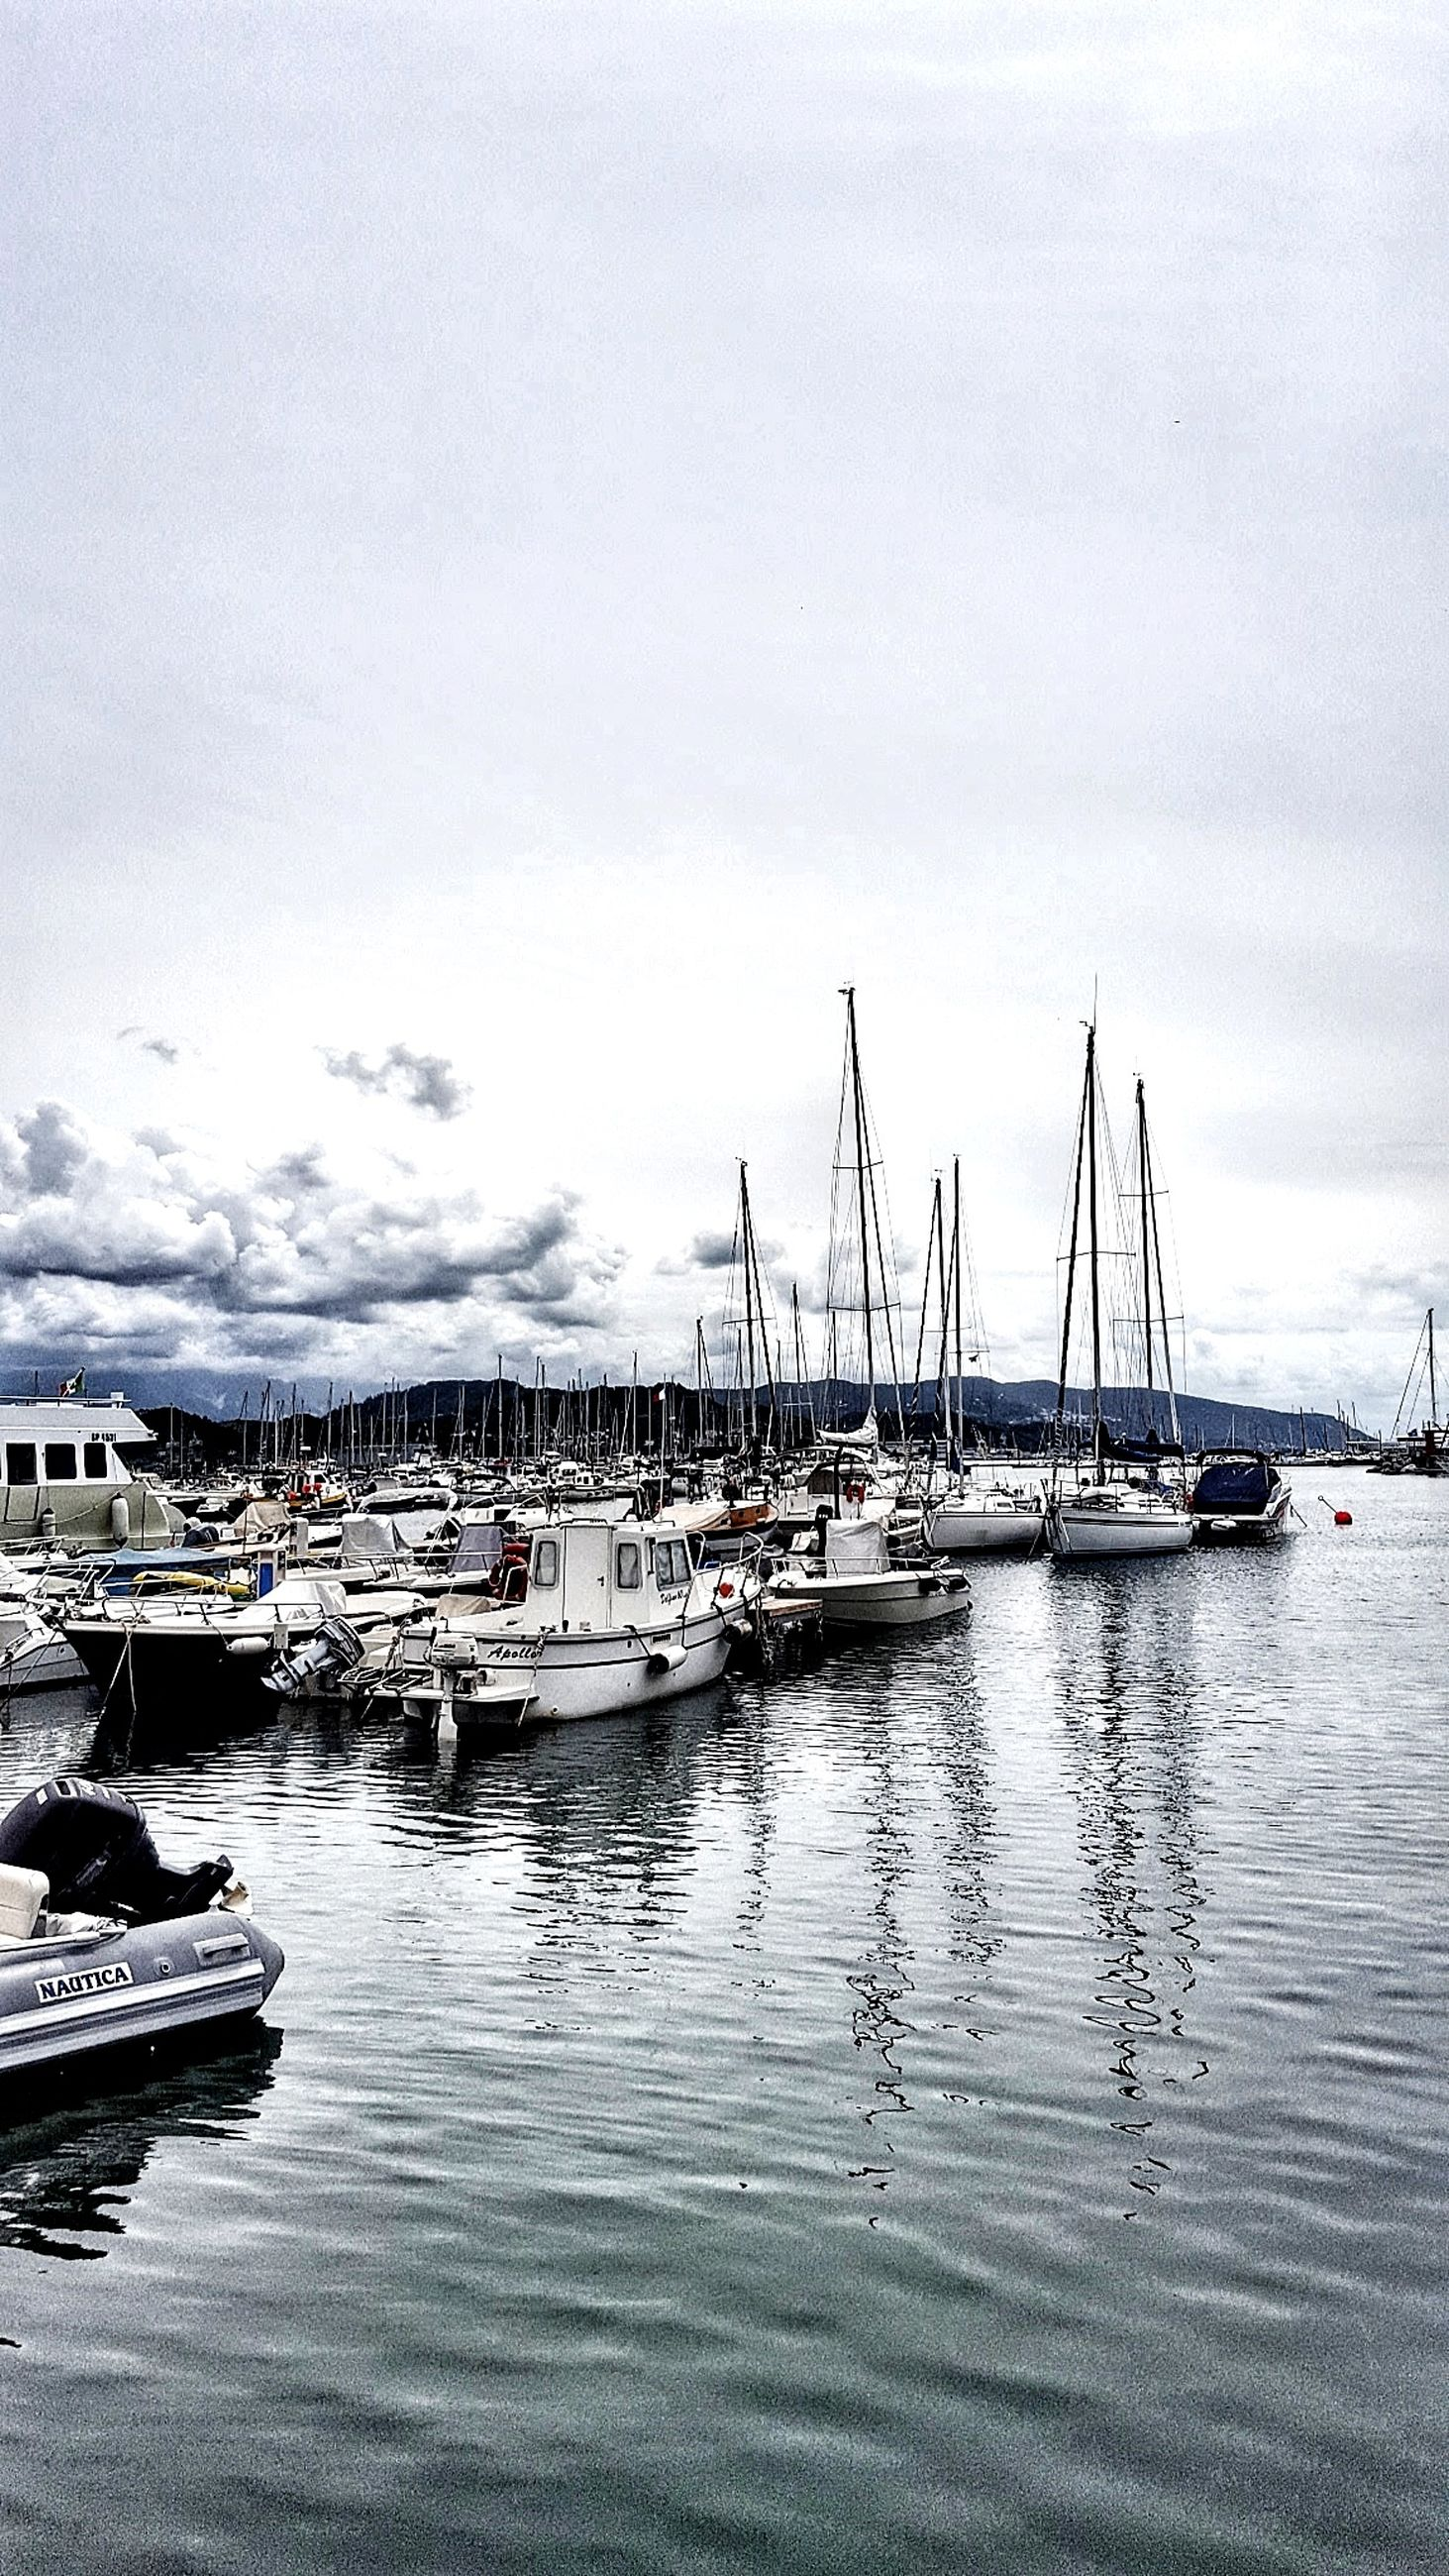 nautical vessel, moored, transportation, harbor, mode of transport, water, sky, no people, reflection, day, cloud - sky, outdoors, sea, mast, nature, yacht